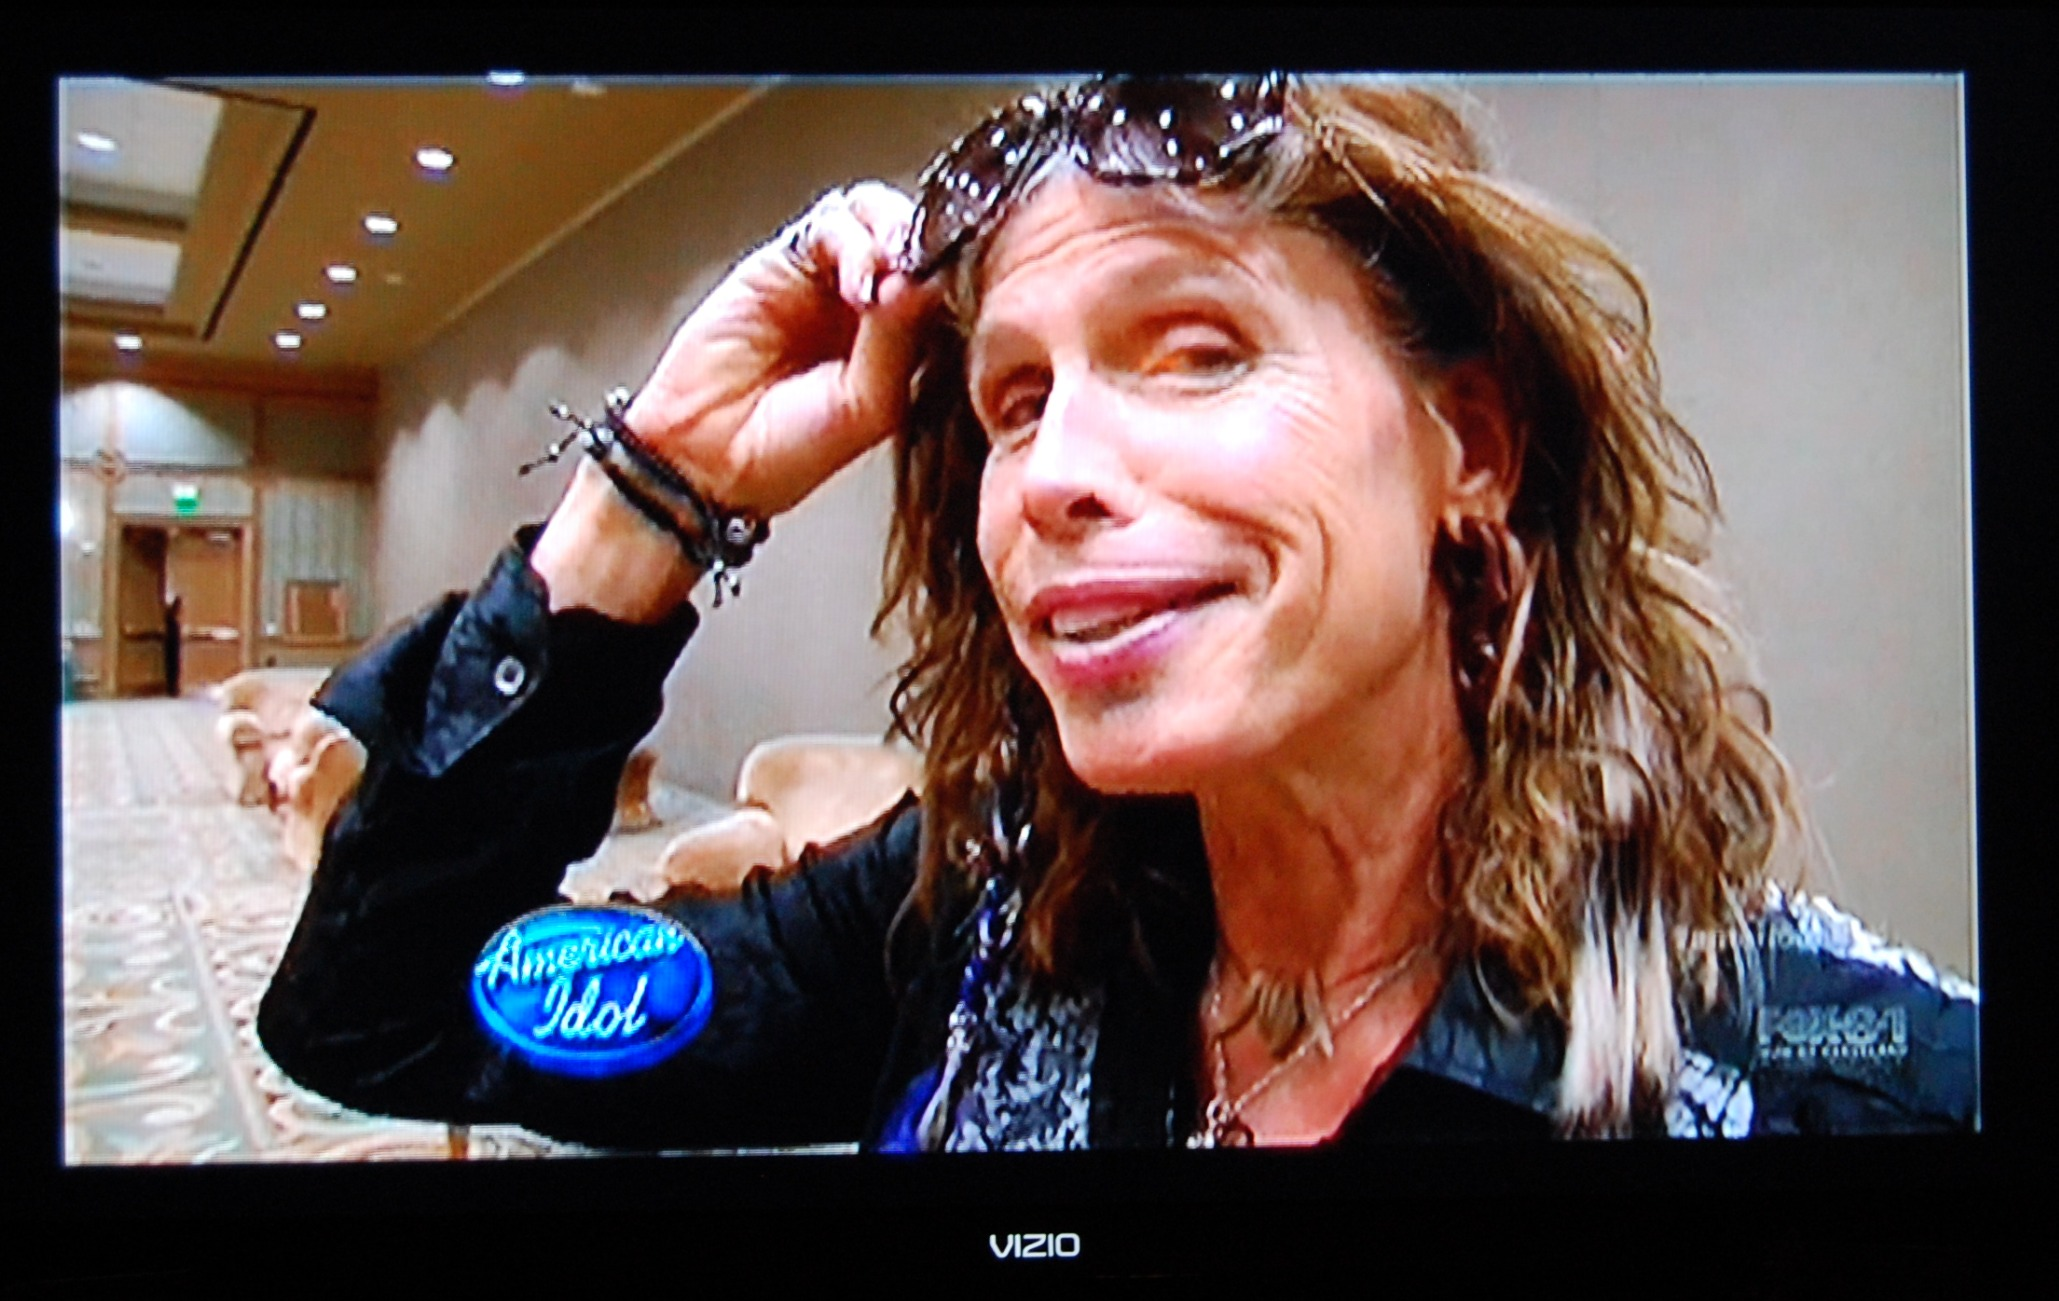 10 More +1 Make it to The Top 24 on American Idol | Nikitaland